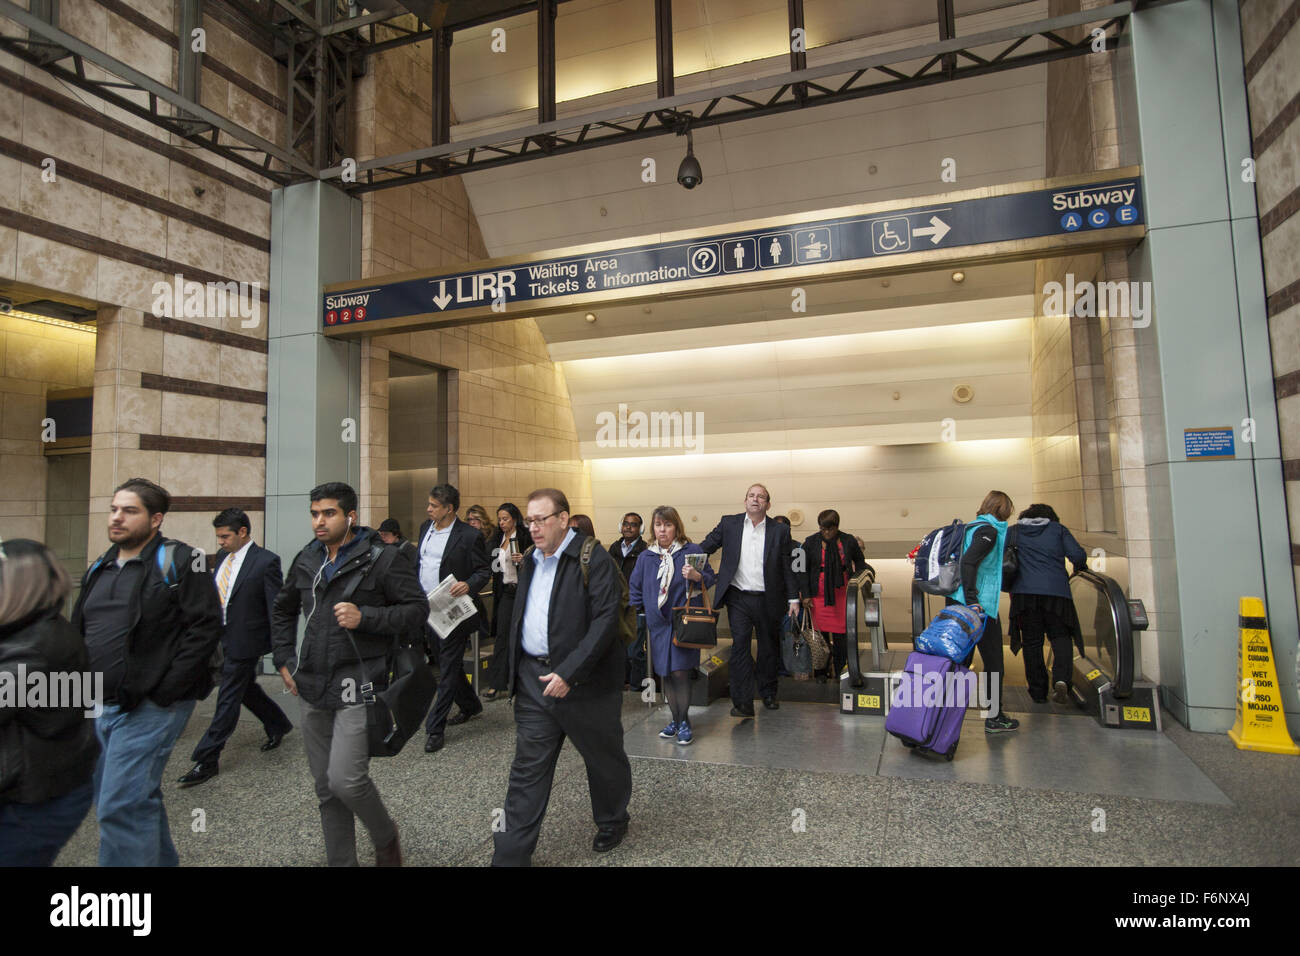 commuters exit penn station on 34th st from the subway long island railroad during the morning rush hour in manhattan